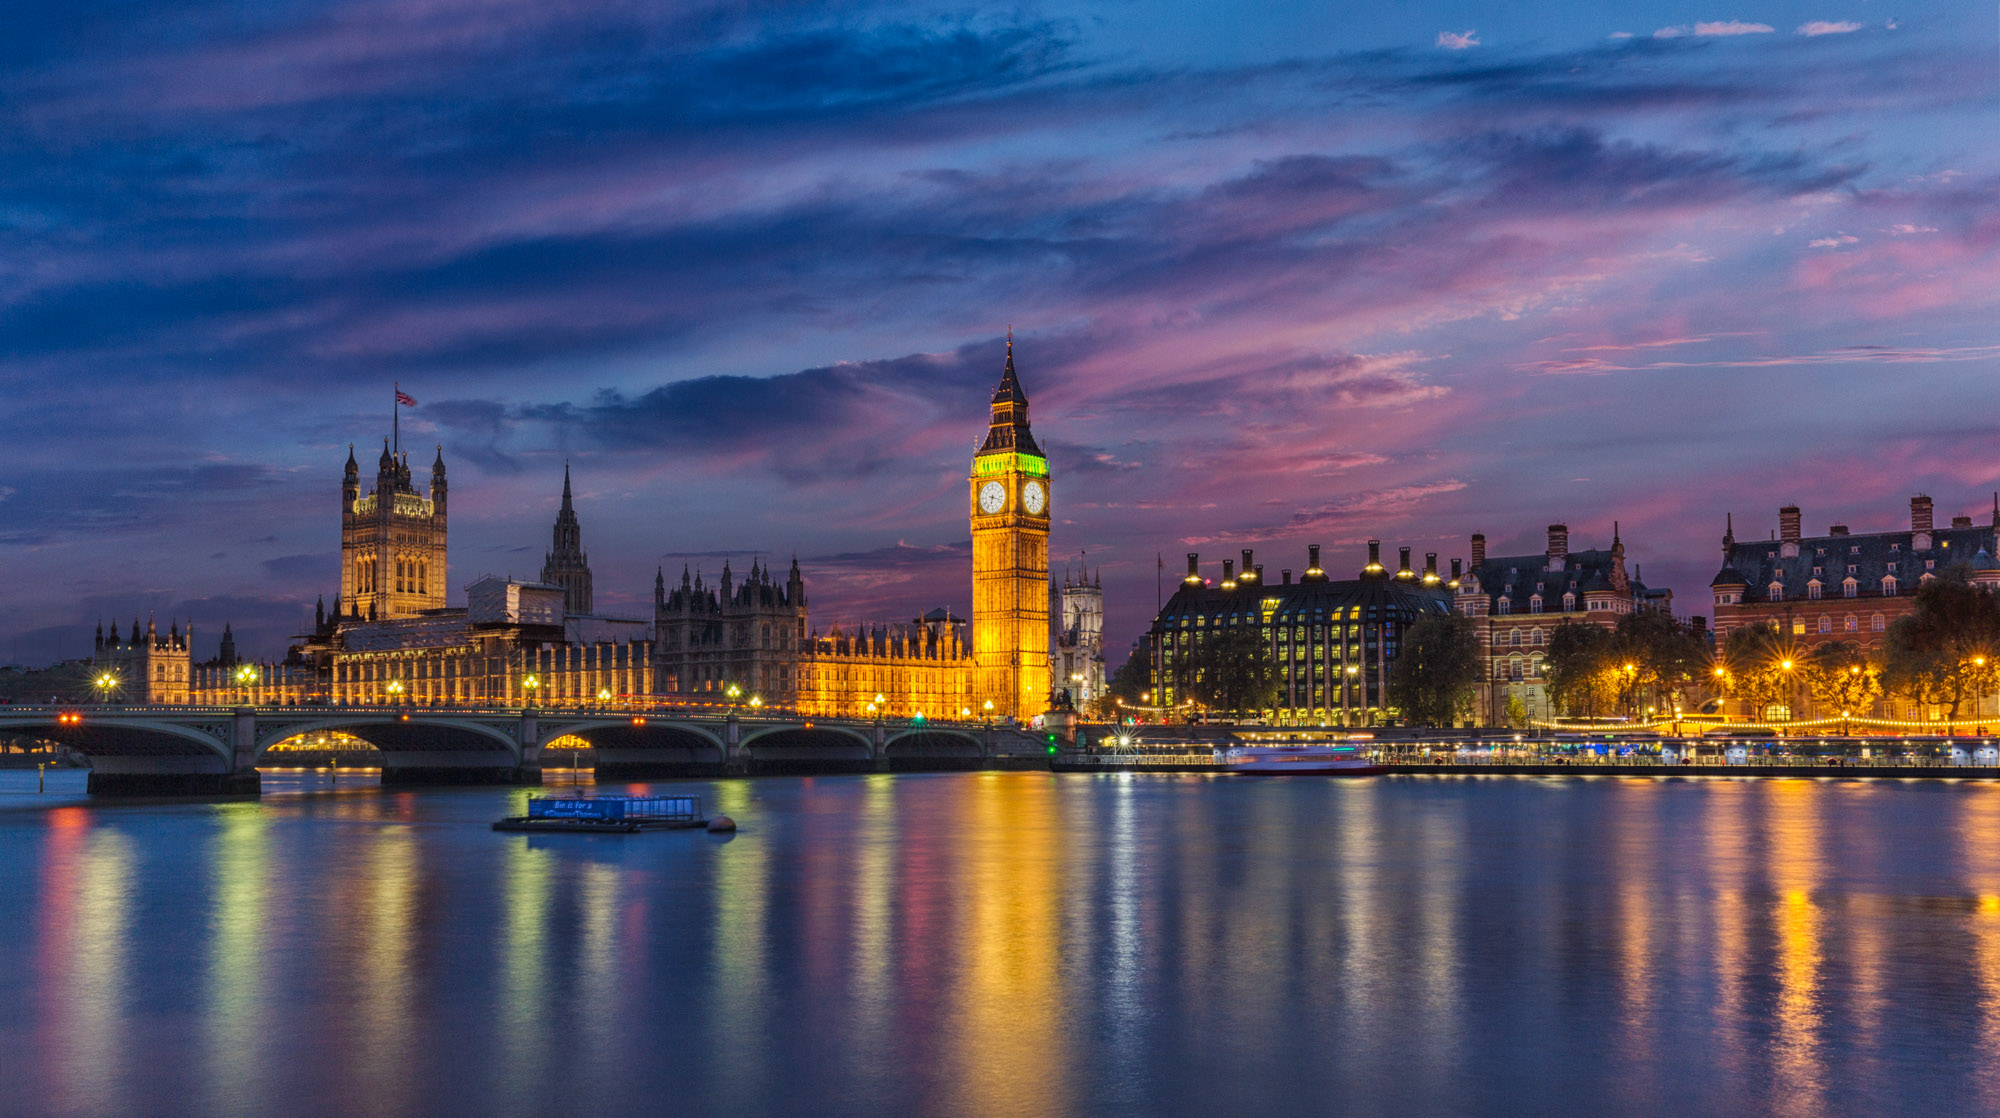 long exposure night photography of Big Ben Eliabeth Clock tower and parliament Westminster Palace in London UK